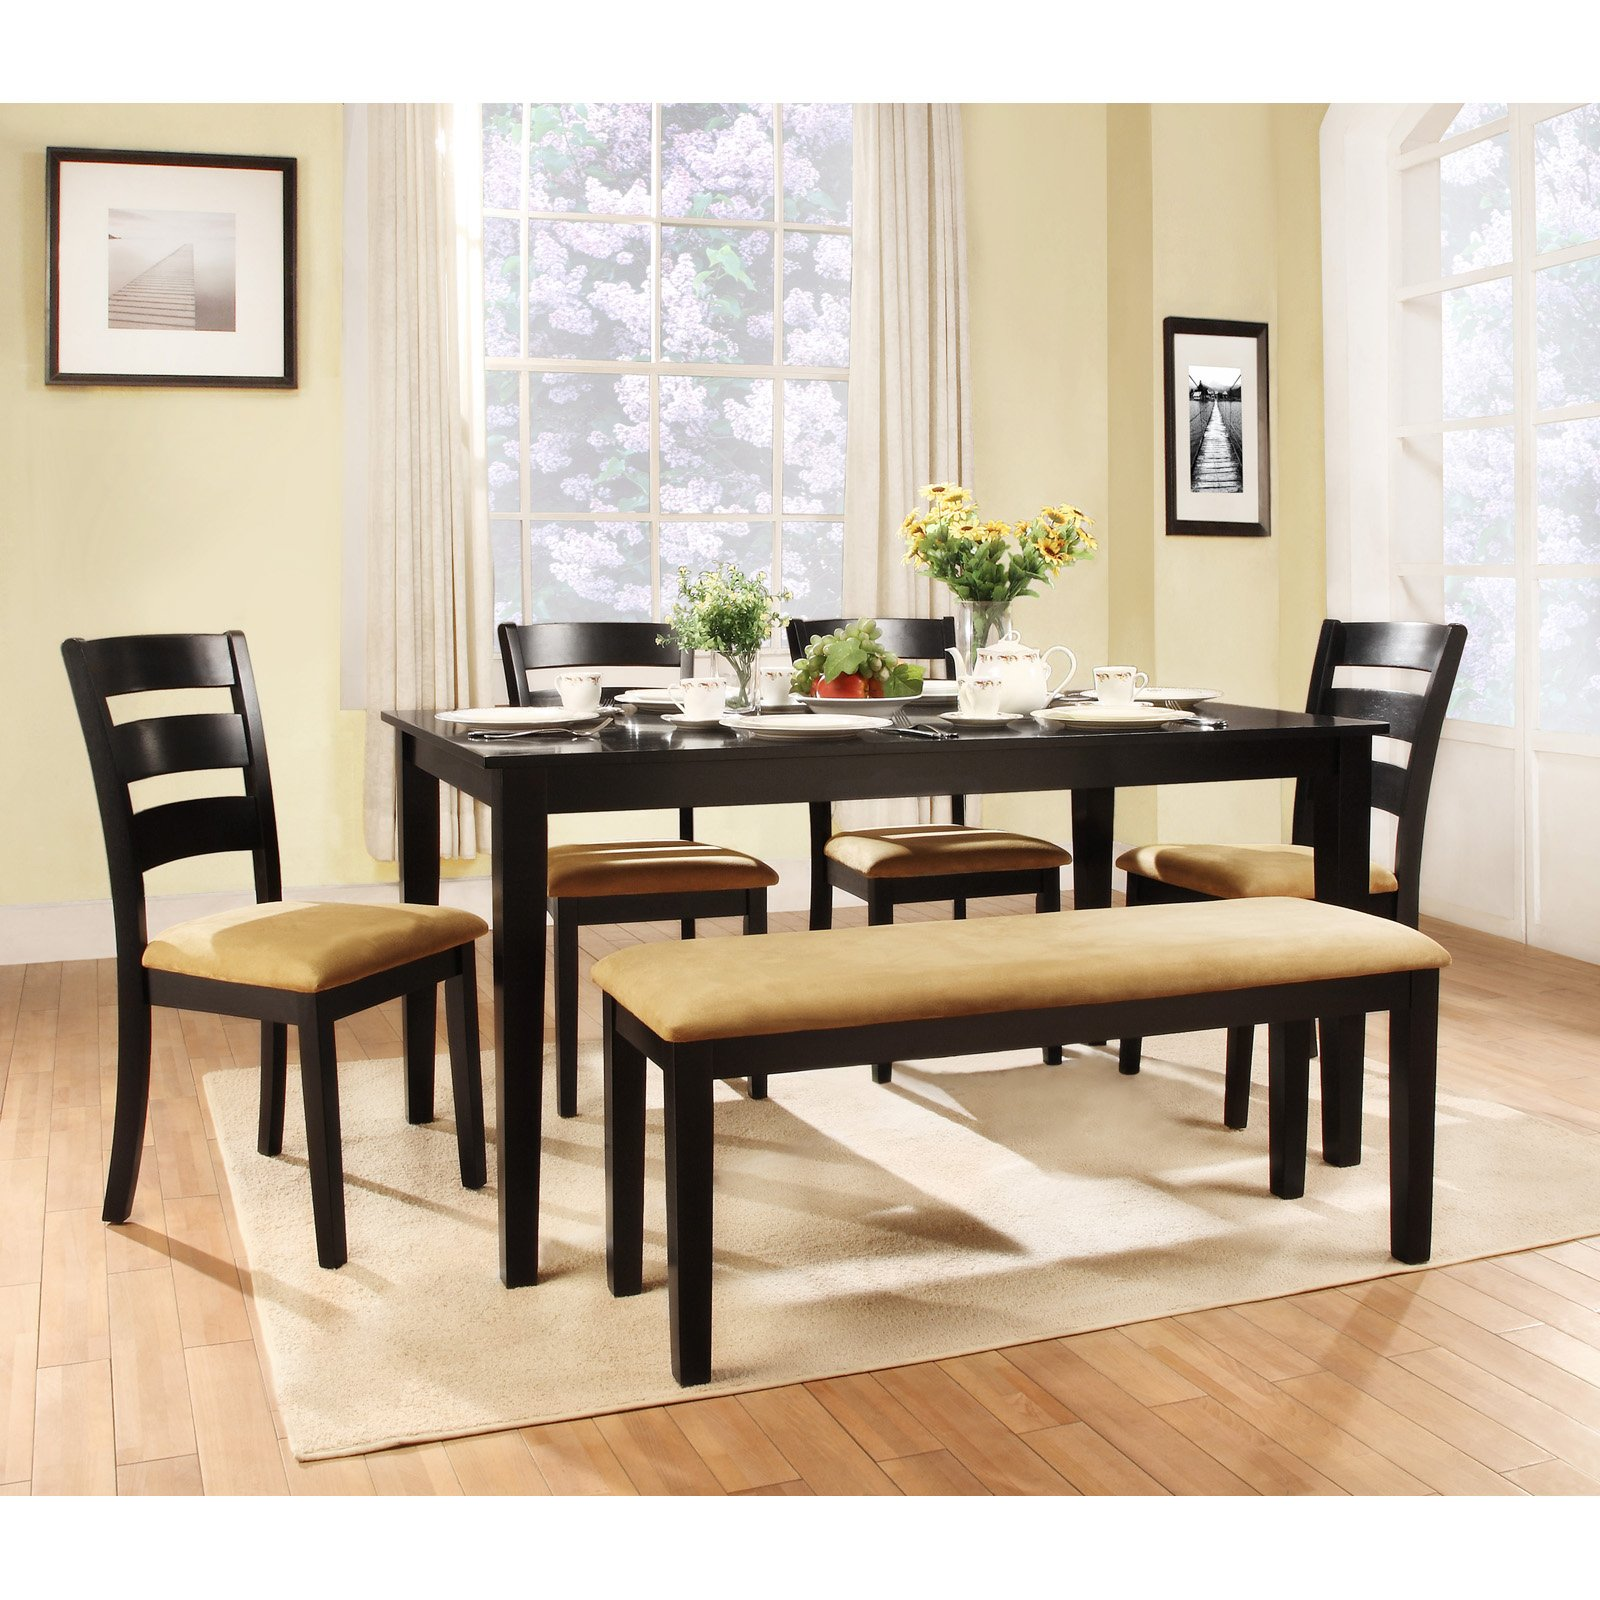 Modern bench style dining table set ideas homesfeed for Dining set ideas